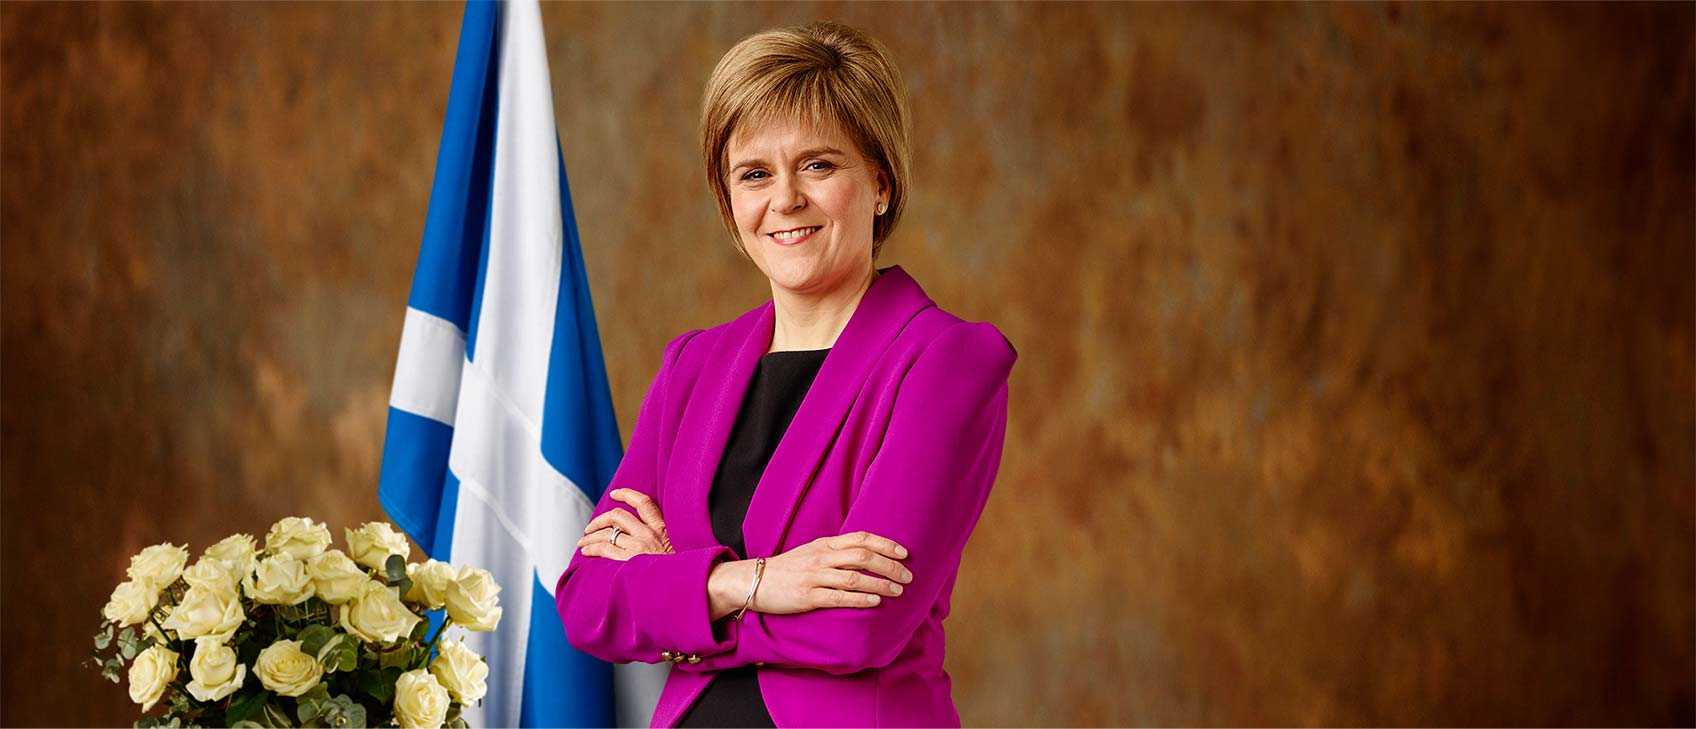 Nicola_Sturgeon_Net_Worth